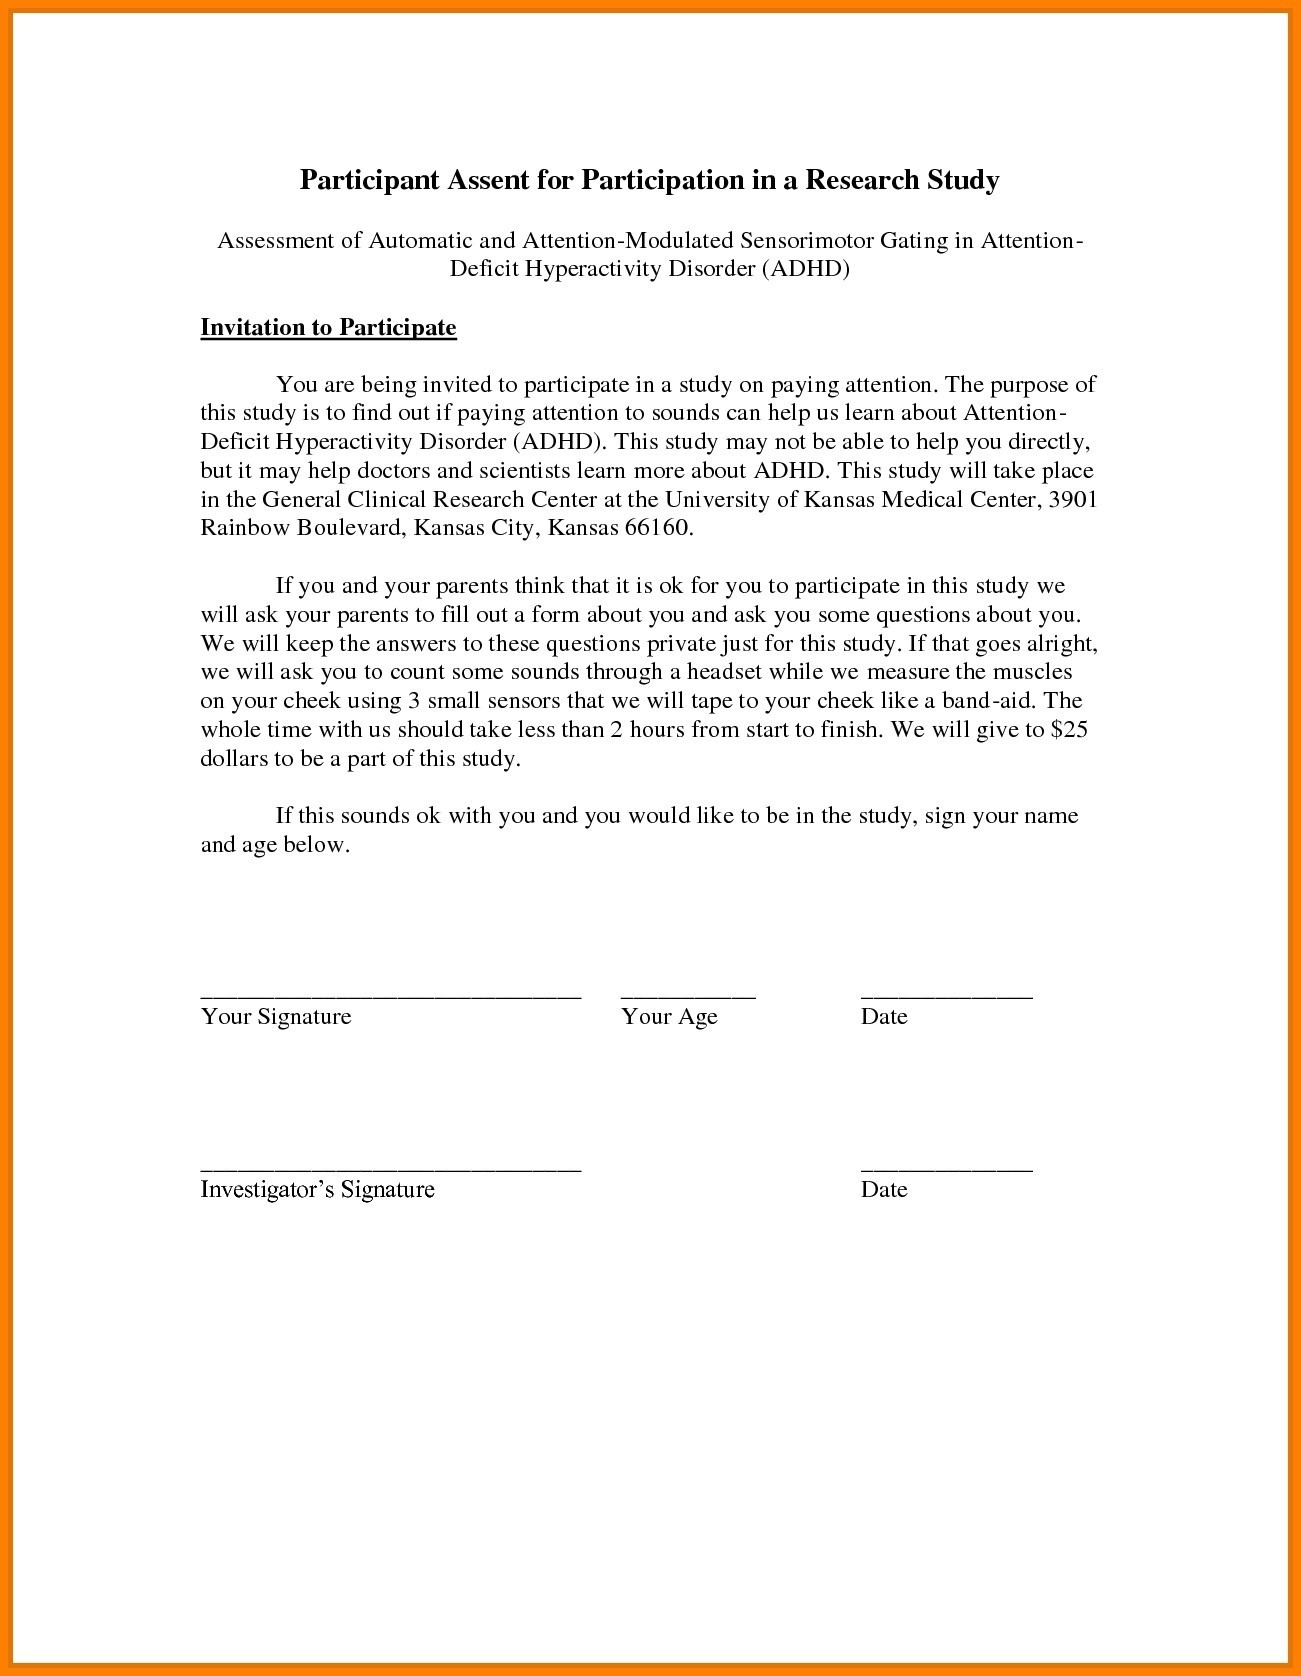 Child Travel Consent Letter Template - Travel Consent Letter Best Consent Letter for Children Travelling